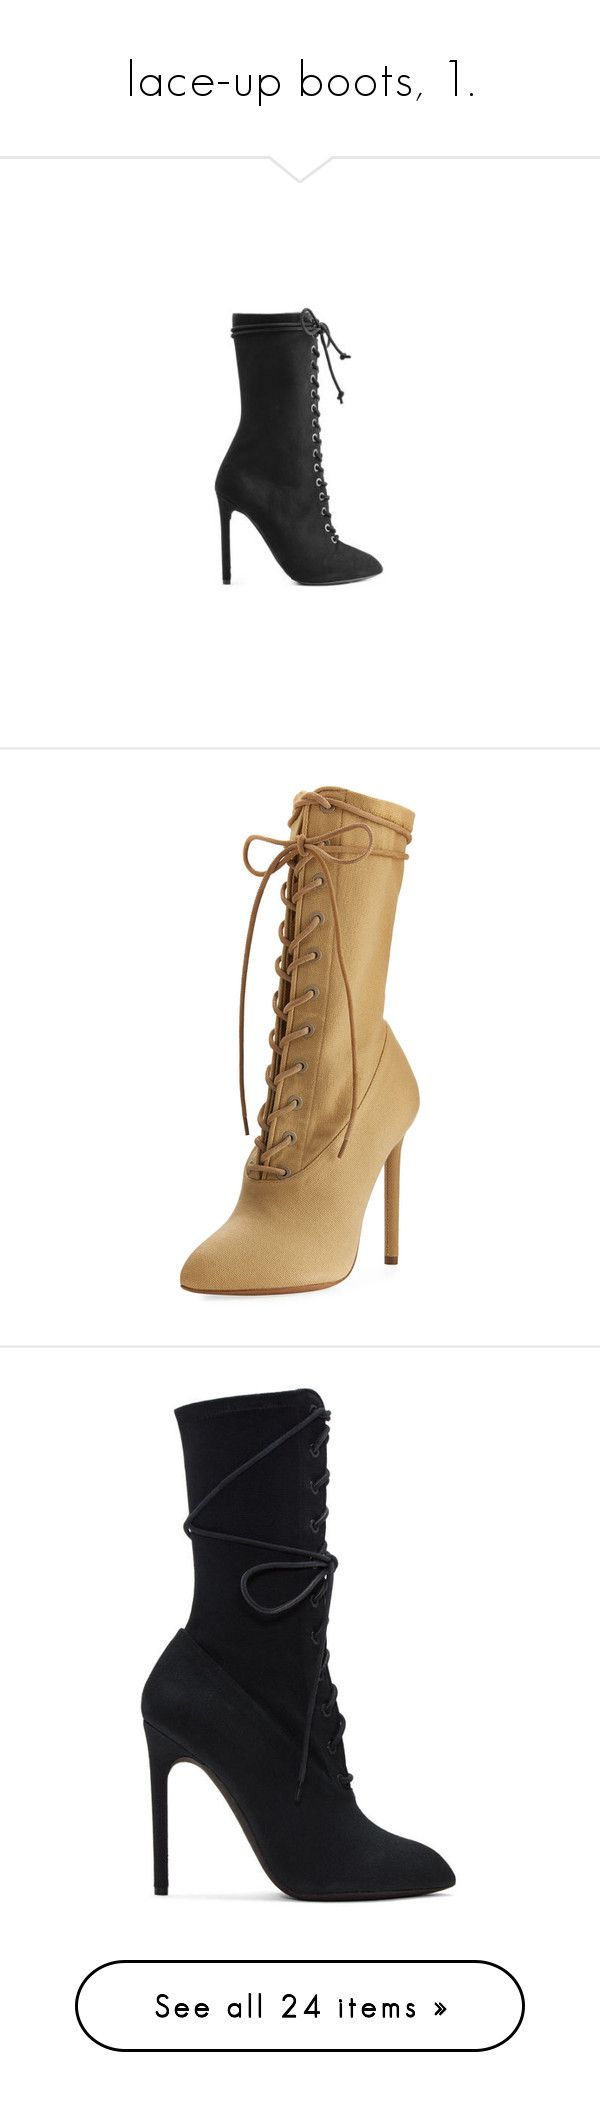 """""""lace-up boots, 1."""" by originalimanim ❤ liked on Polyvore featuring shoes, boots, heels, black laced shoes, black suede boots, suede lace-up boots, suede boots, black lace up shoes, ankle booties and beige"""